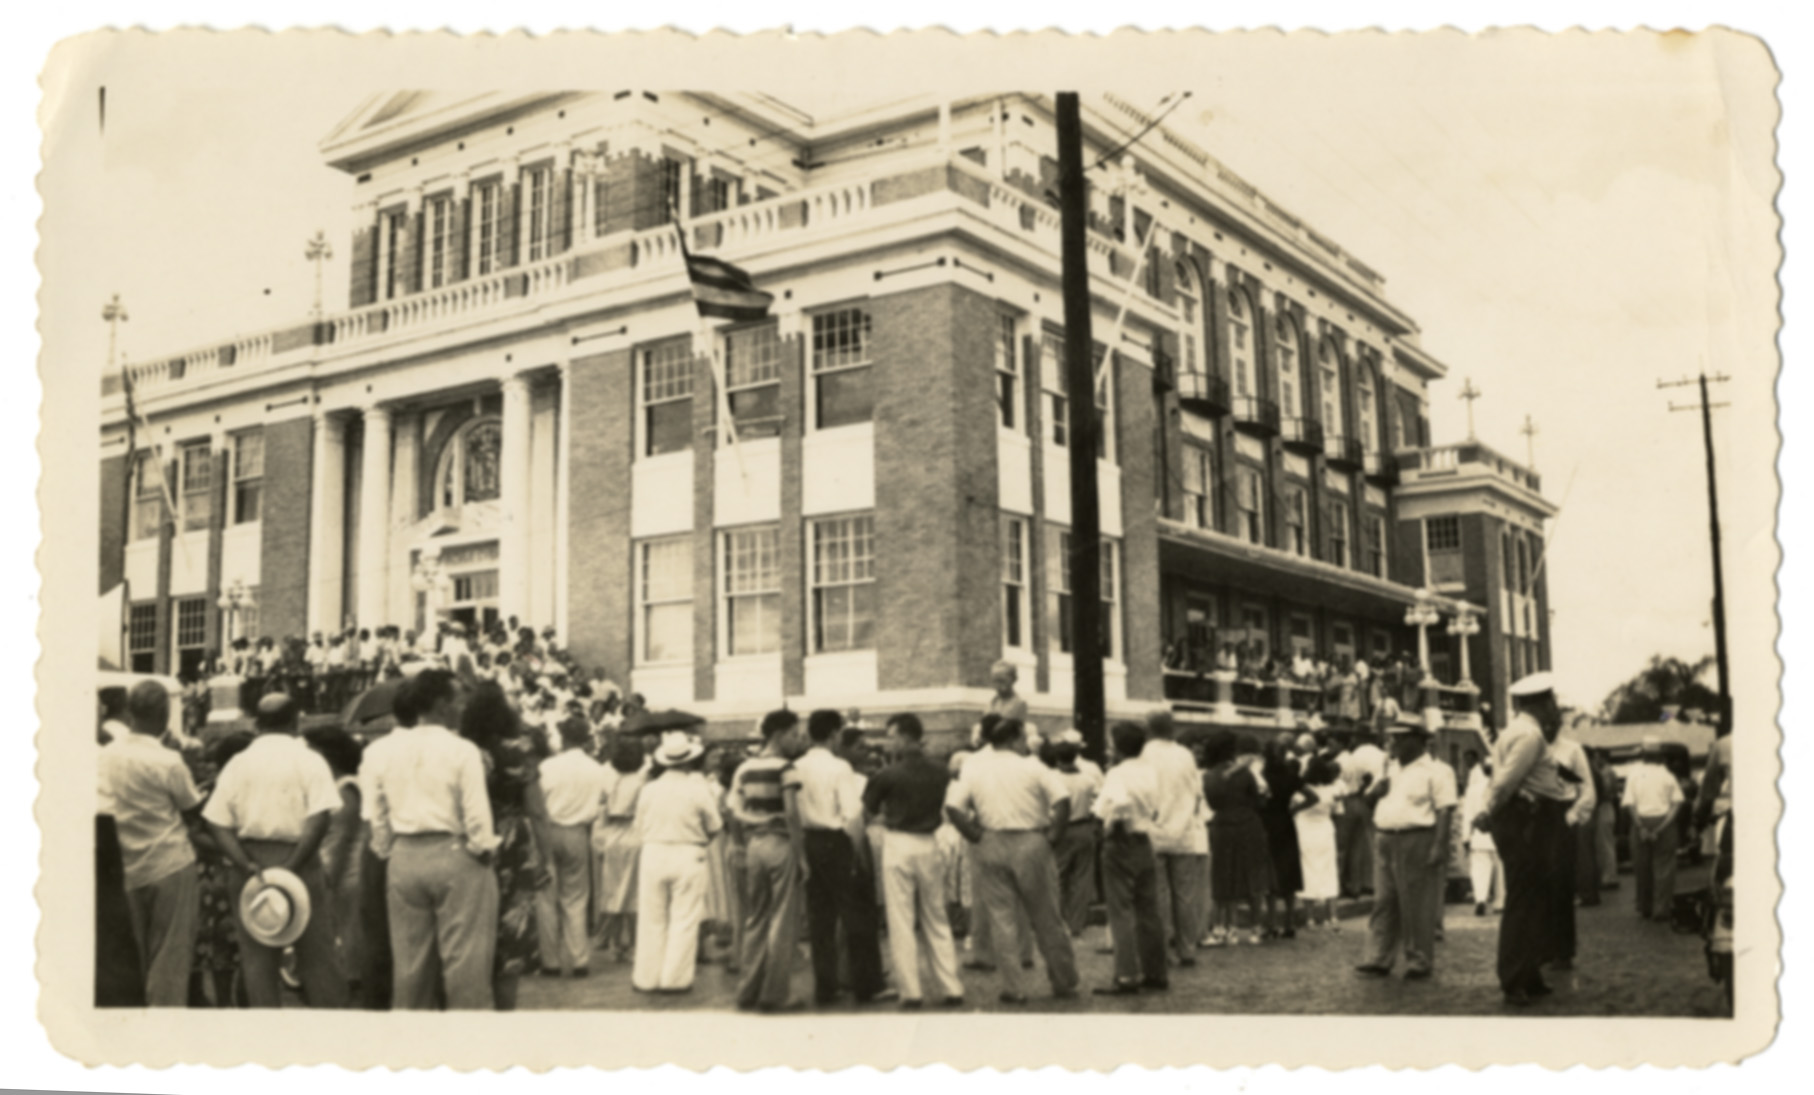 Crowds gather outside of the Club in this 1940s photo